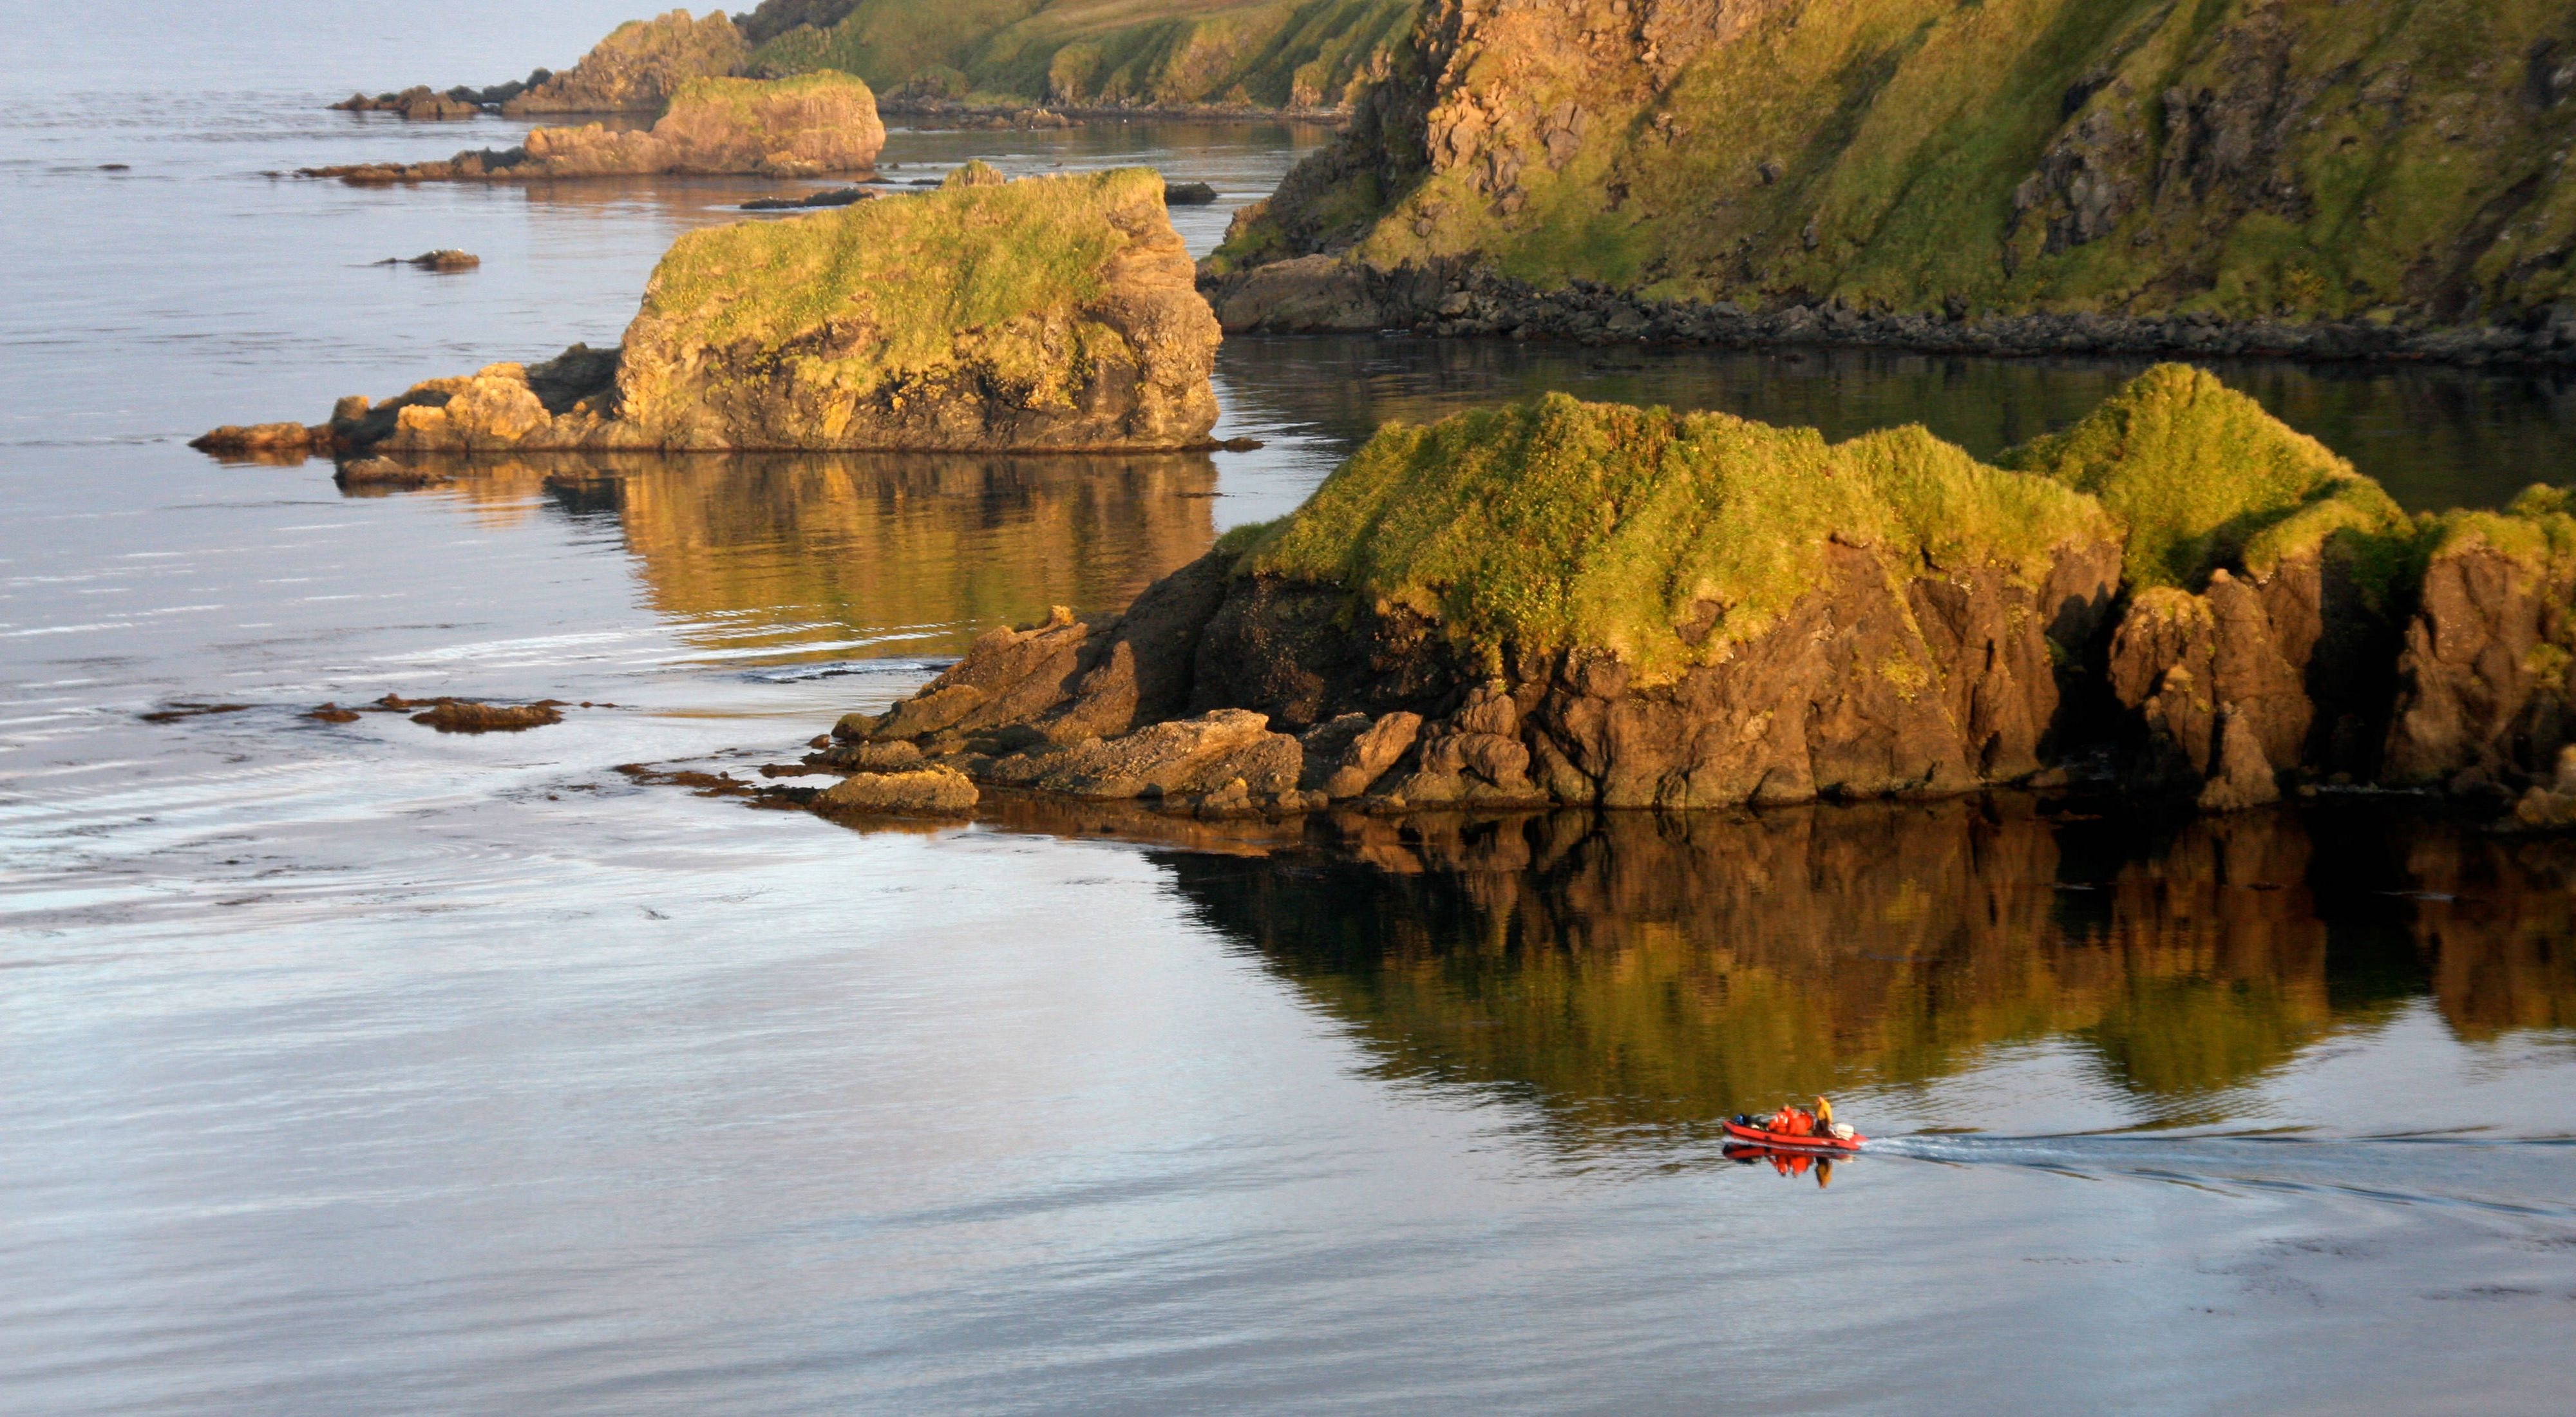 A small red dinghy is dwarfed by the rocky shoreline of Hawadax Island.